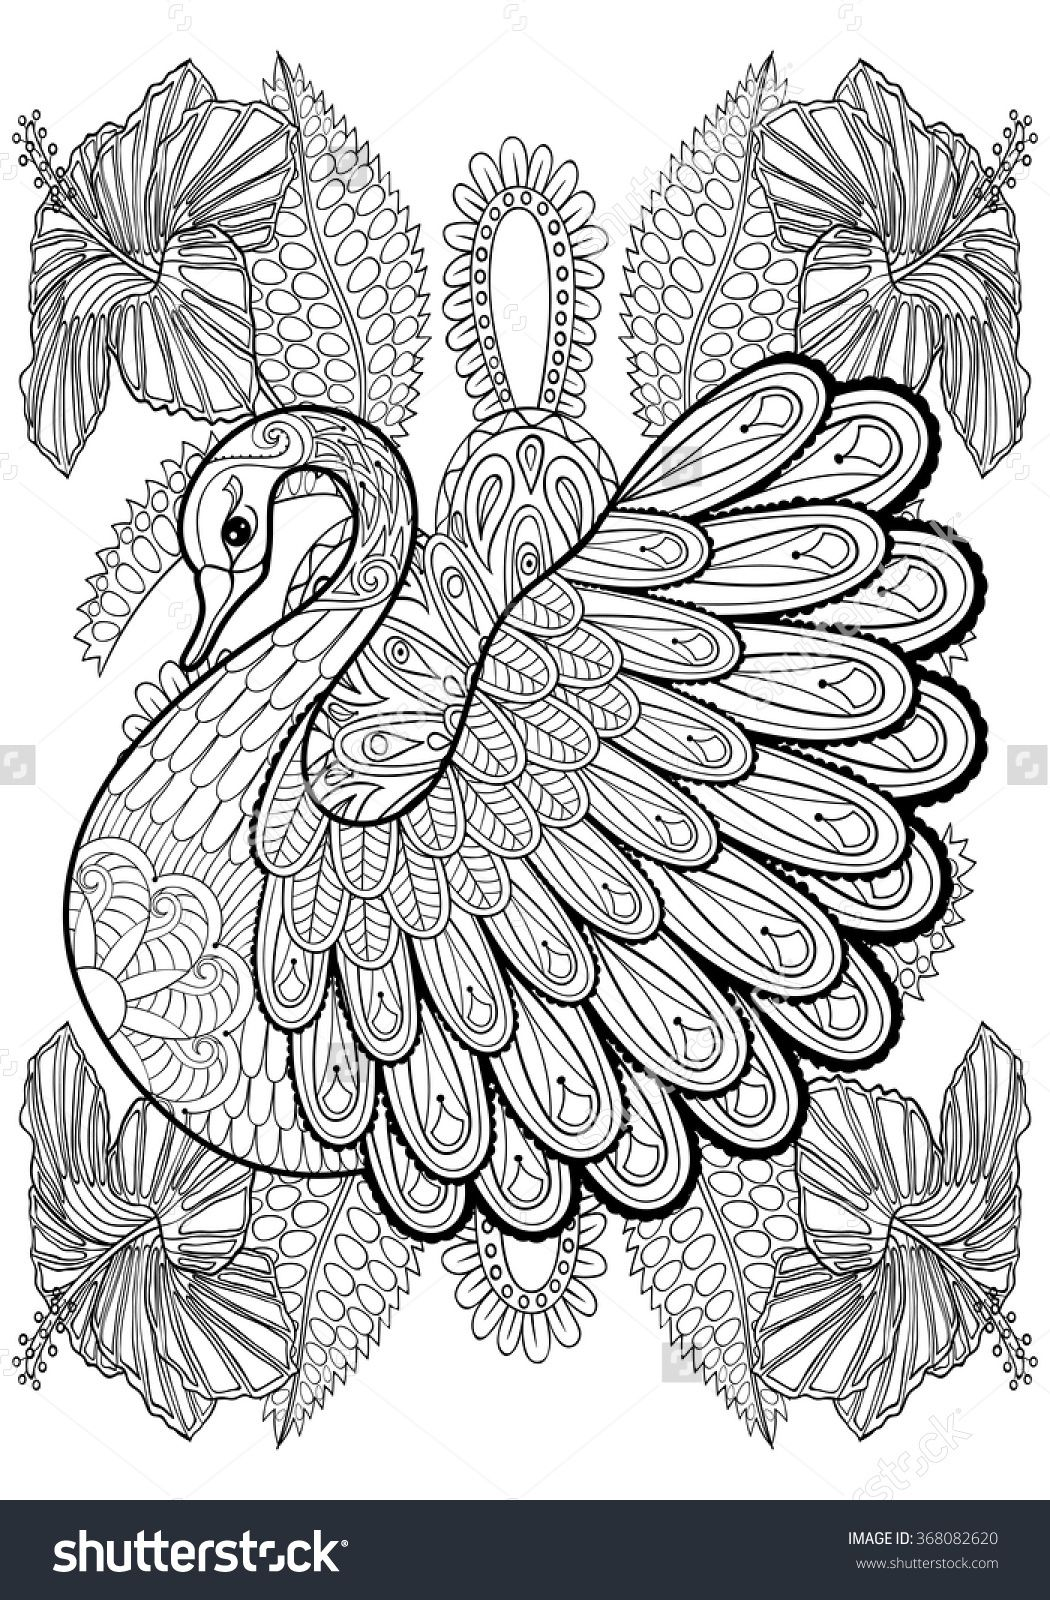 coloring pages for adults flowers - Google Search | Design ...